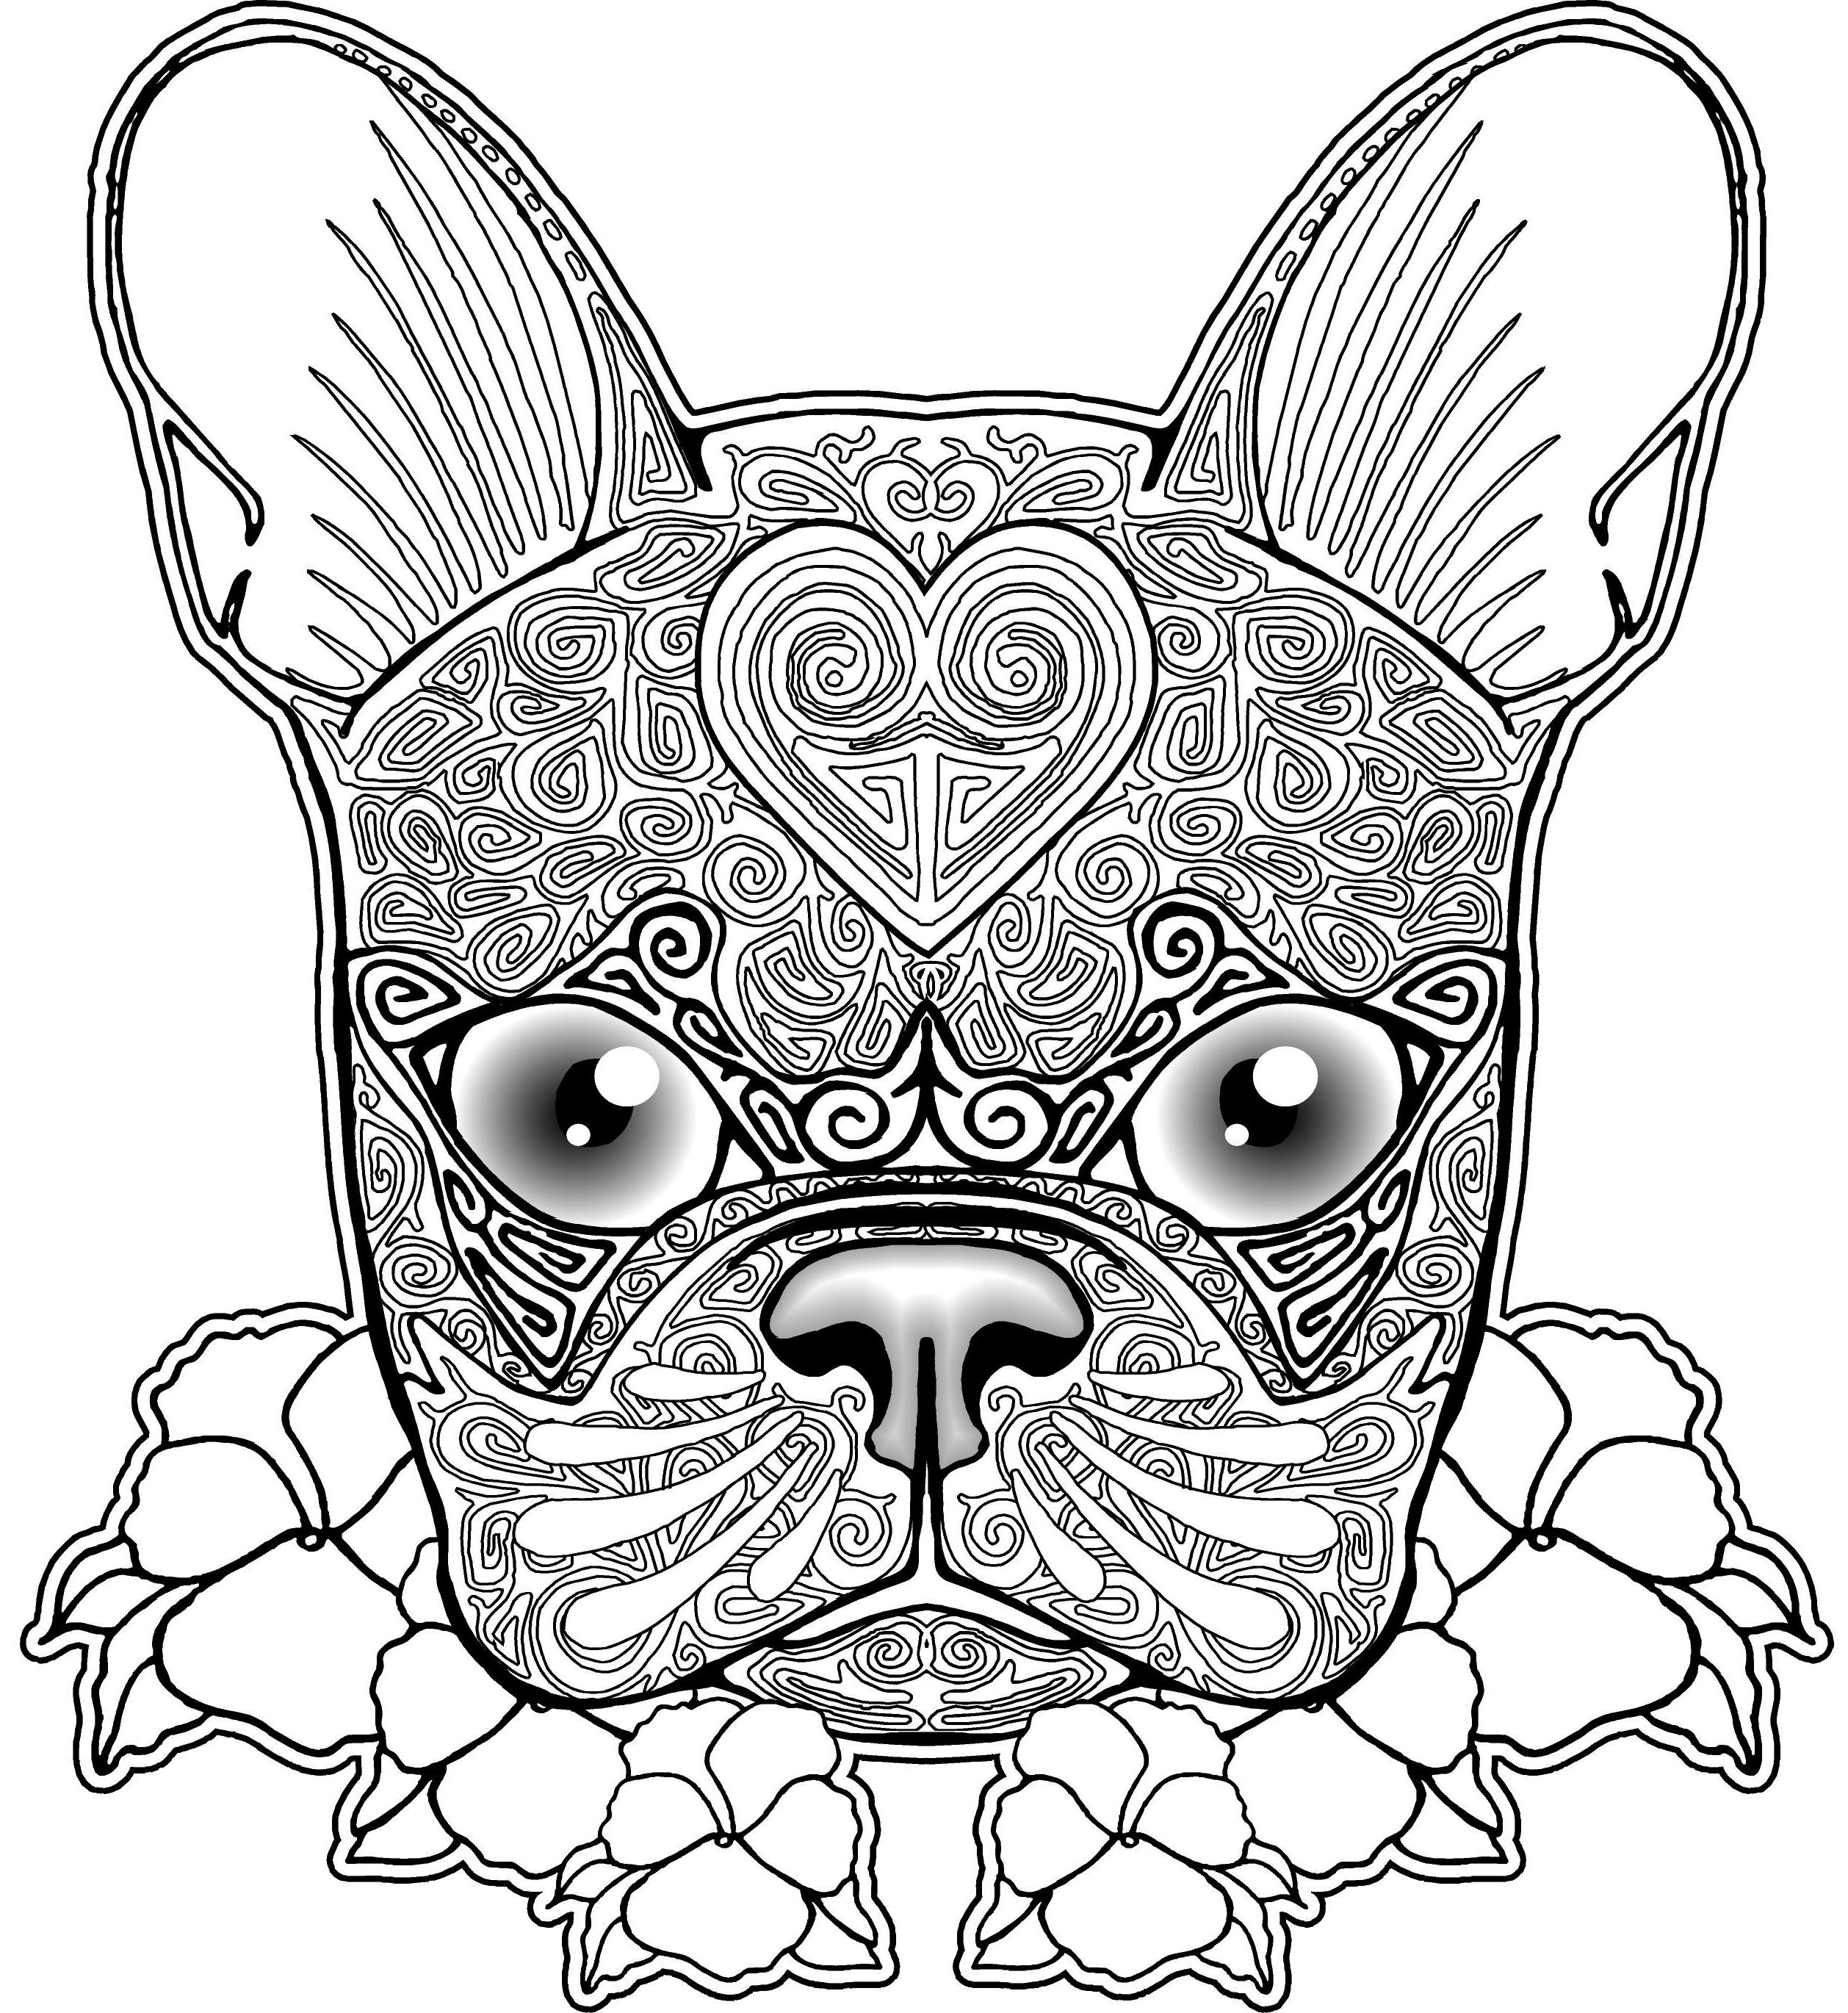 coloring picture dog puppy coloring pages best coloring pages for kids dog coloring picture 1 1